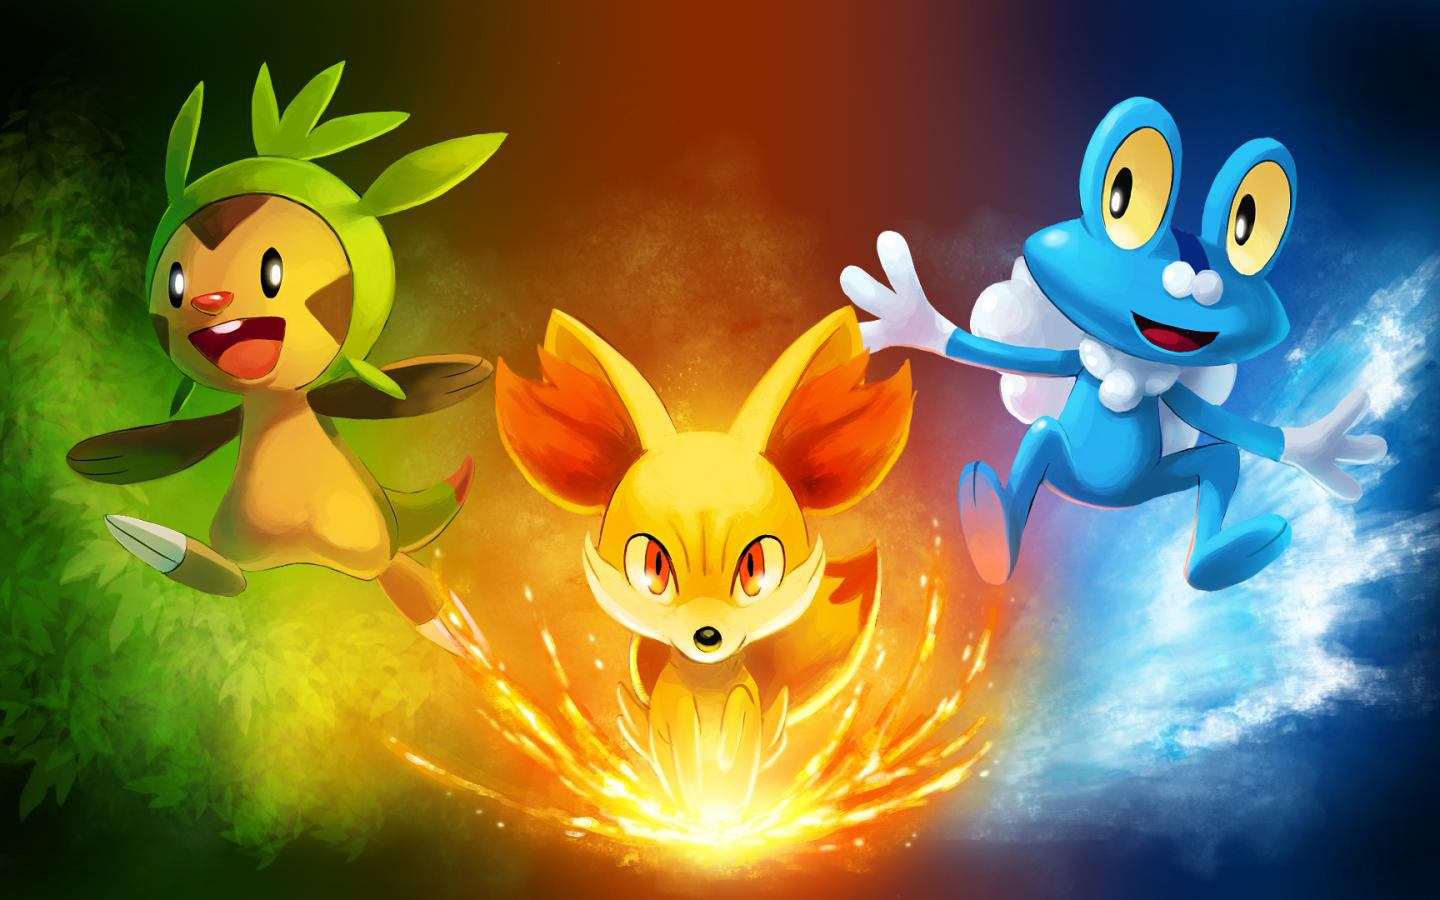 Pokemon HD PC Wallpaper HD Wallpaper 1440x900